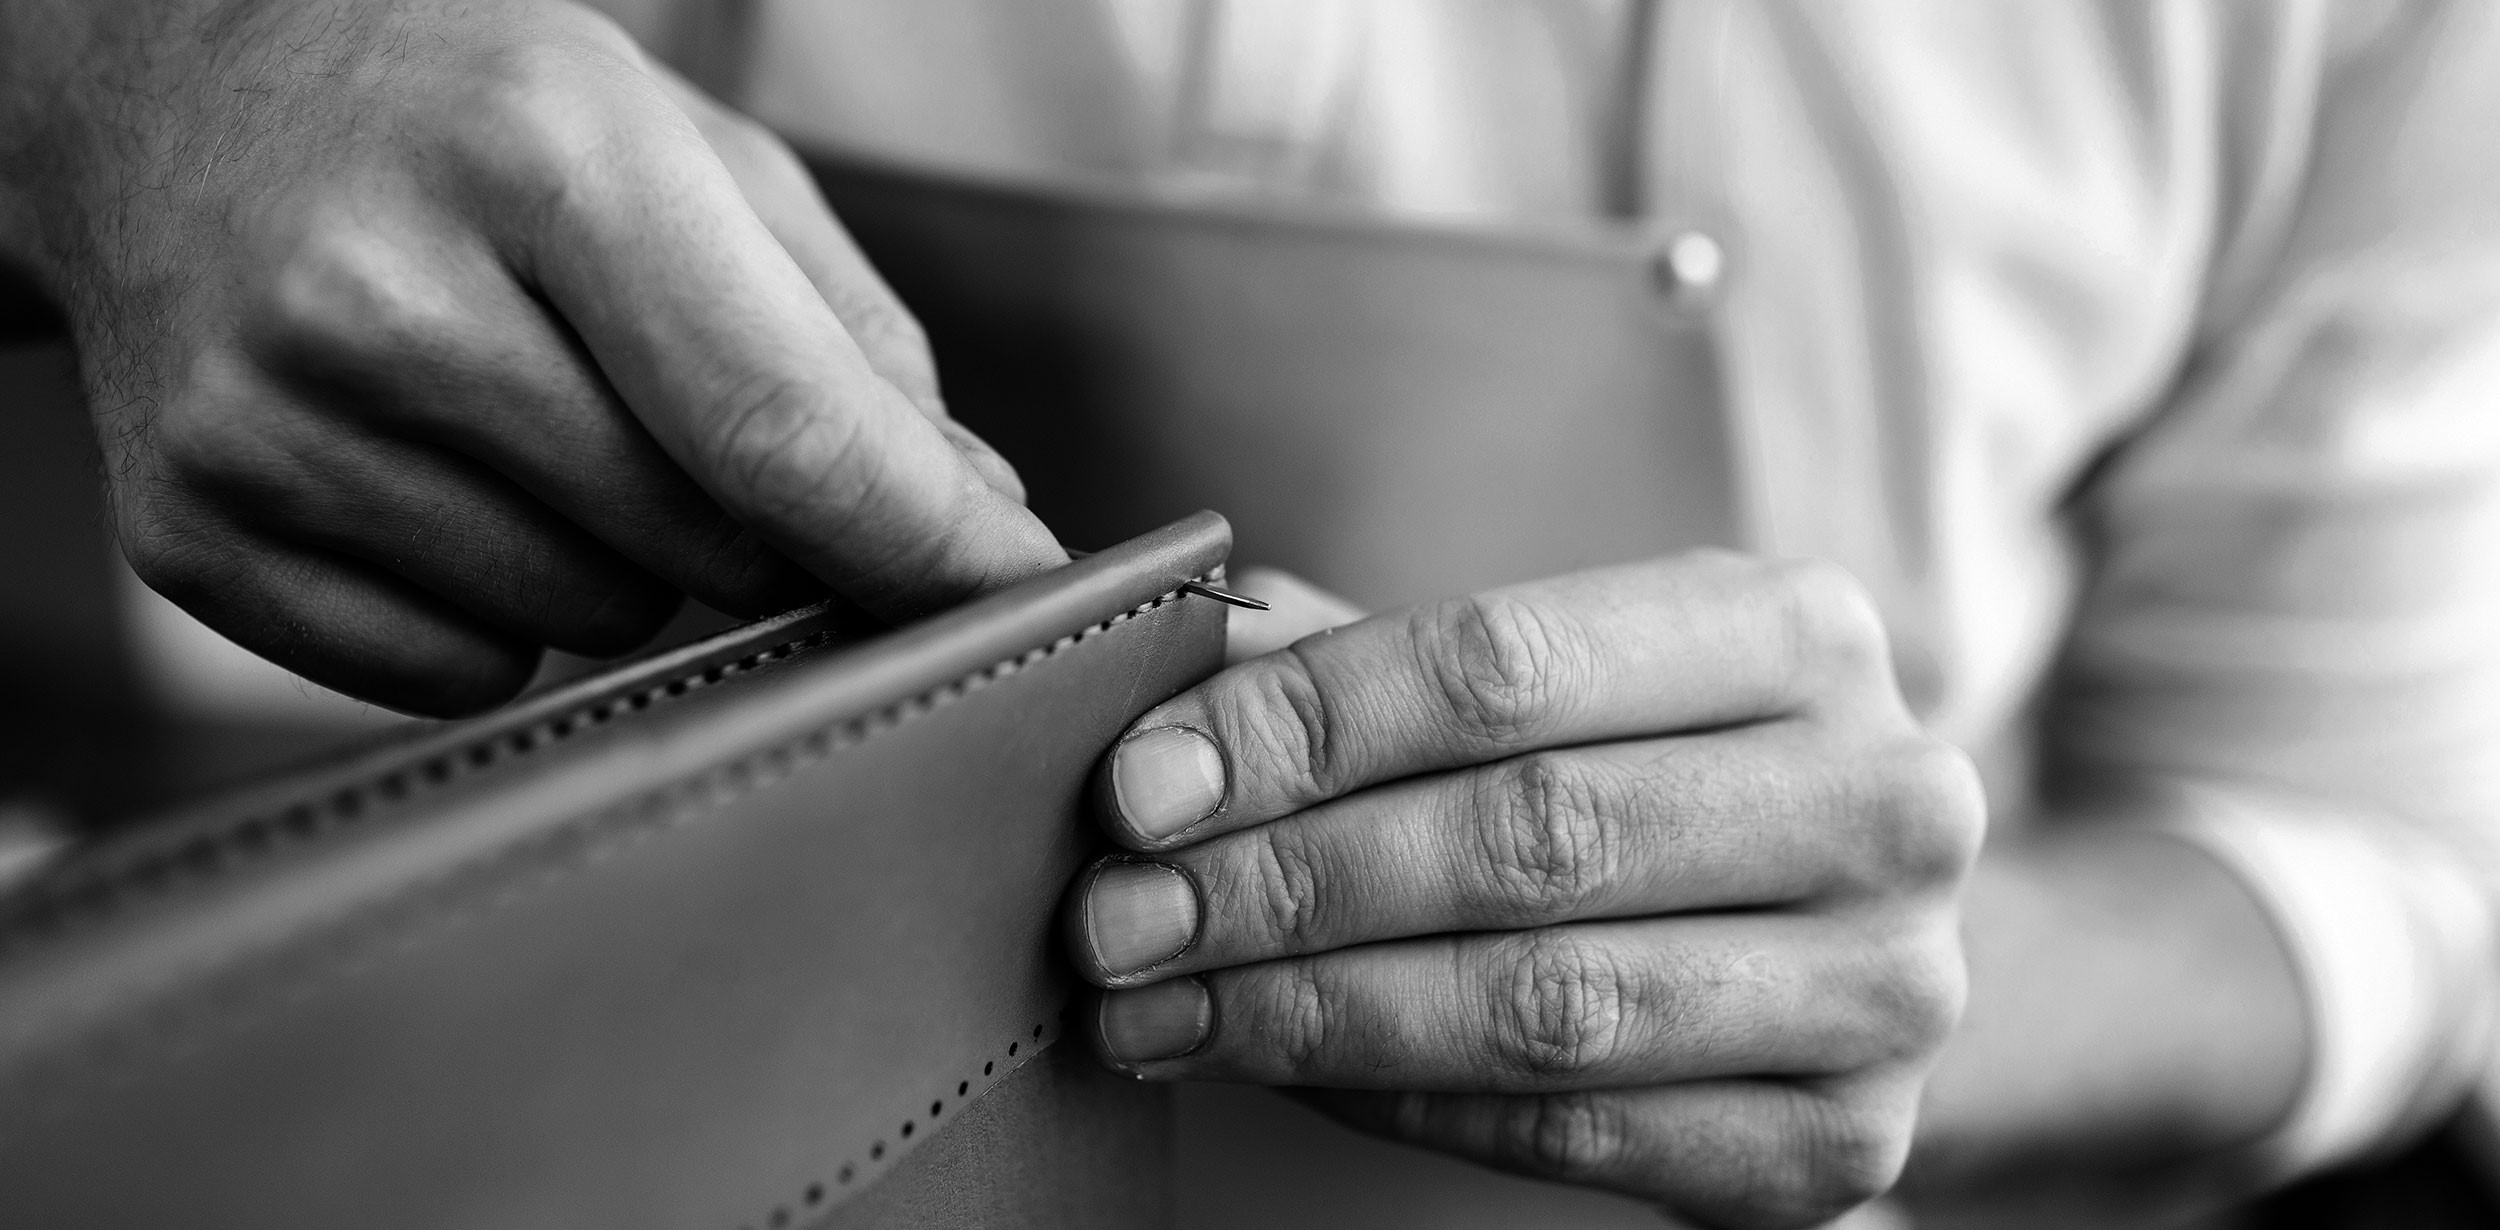 RichingsGreetham Leather Accessories are carefully manufactured with premium materials